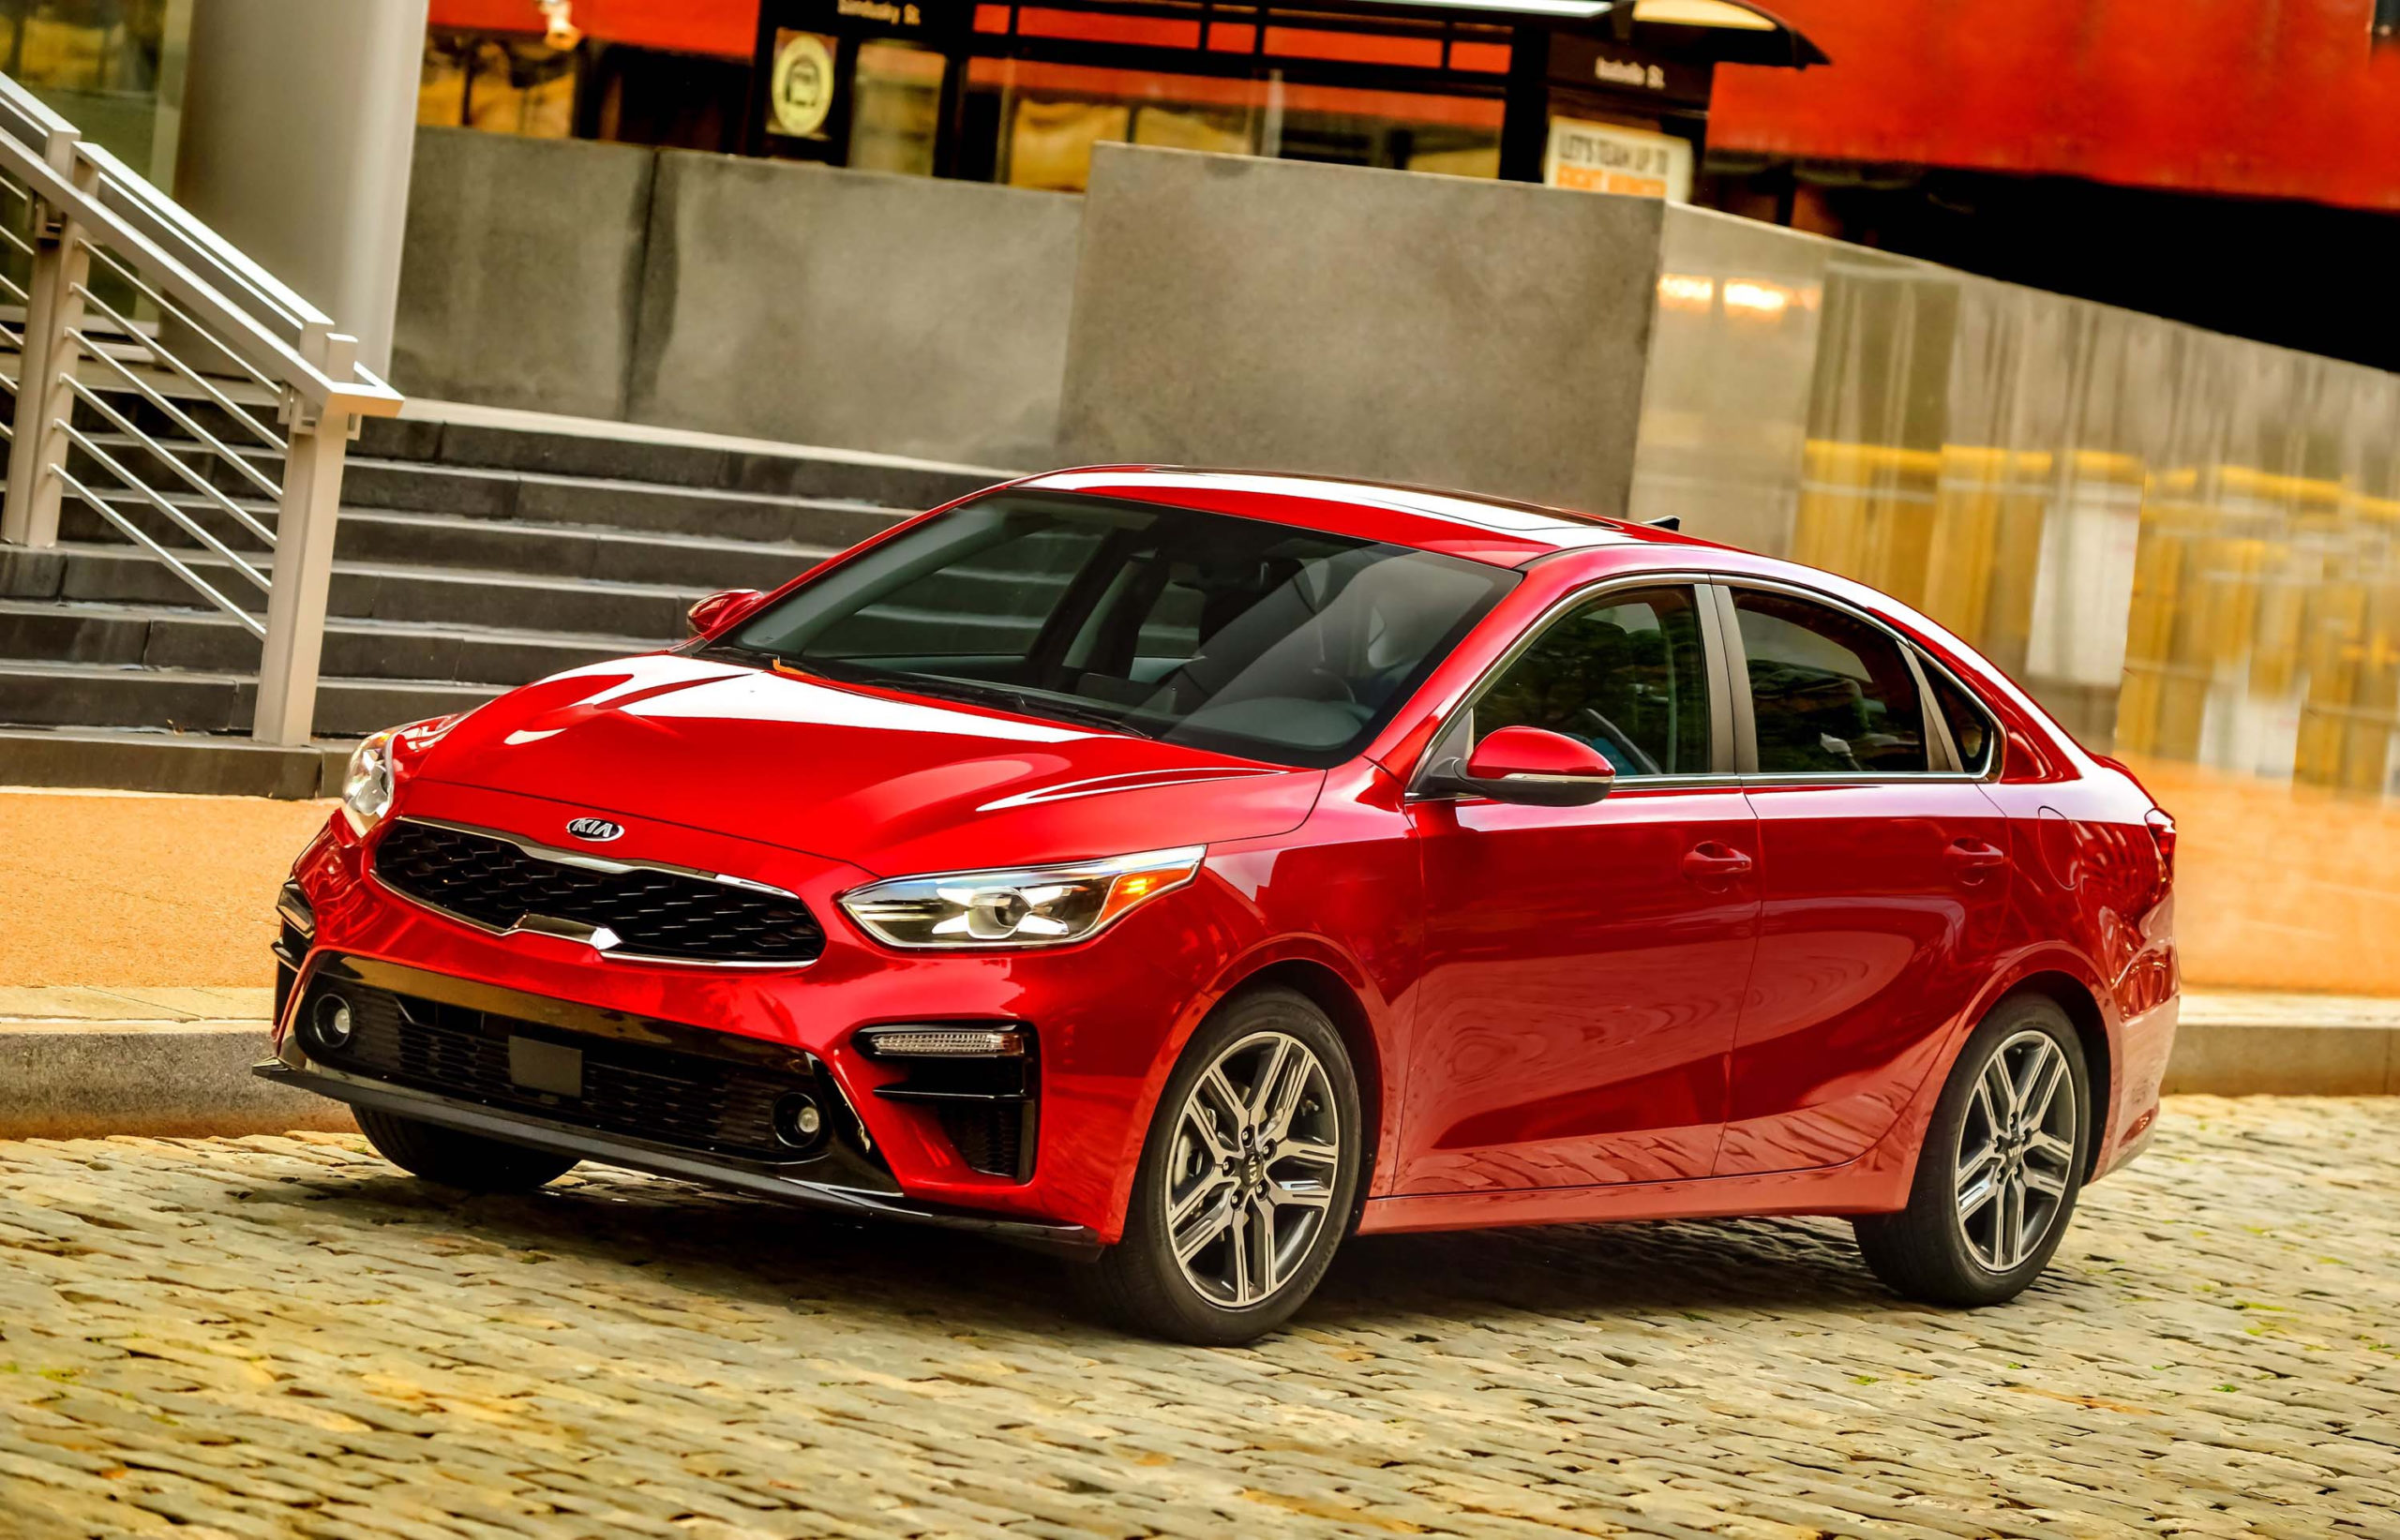 2019 Kia Forte First Drive: Compact Car Blues Wiped Away - 2022 Kia Forte Red Transmission Options, Gas Mileage